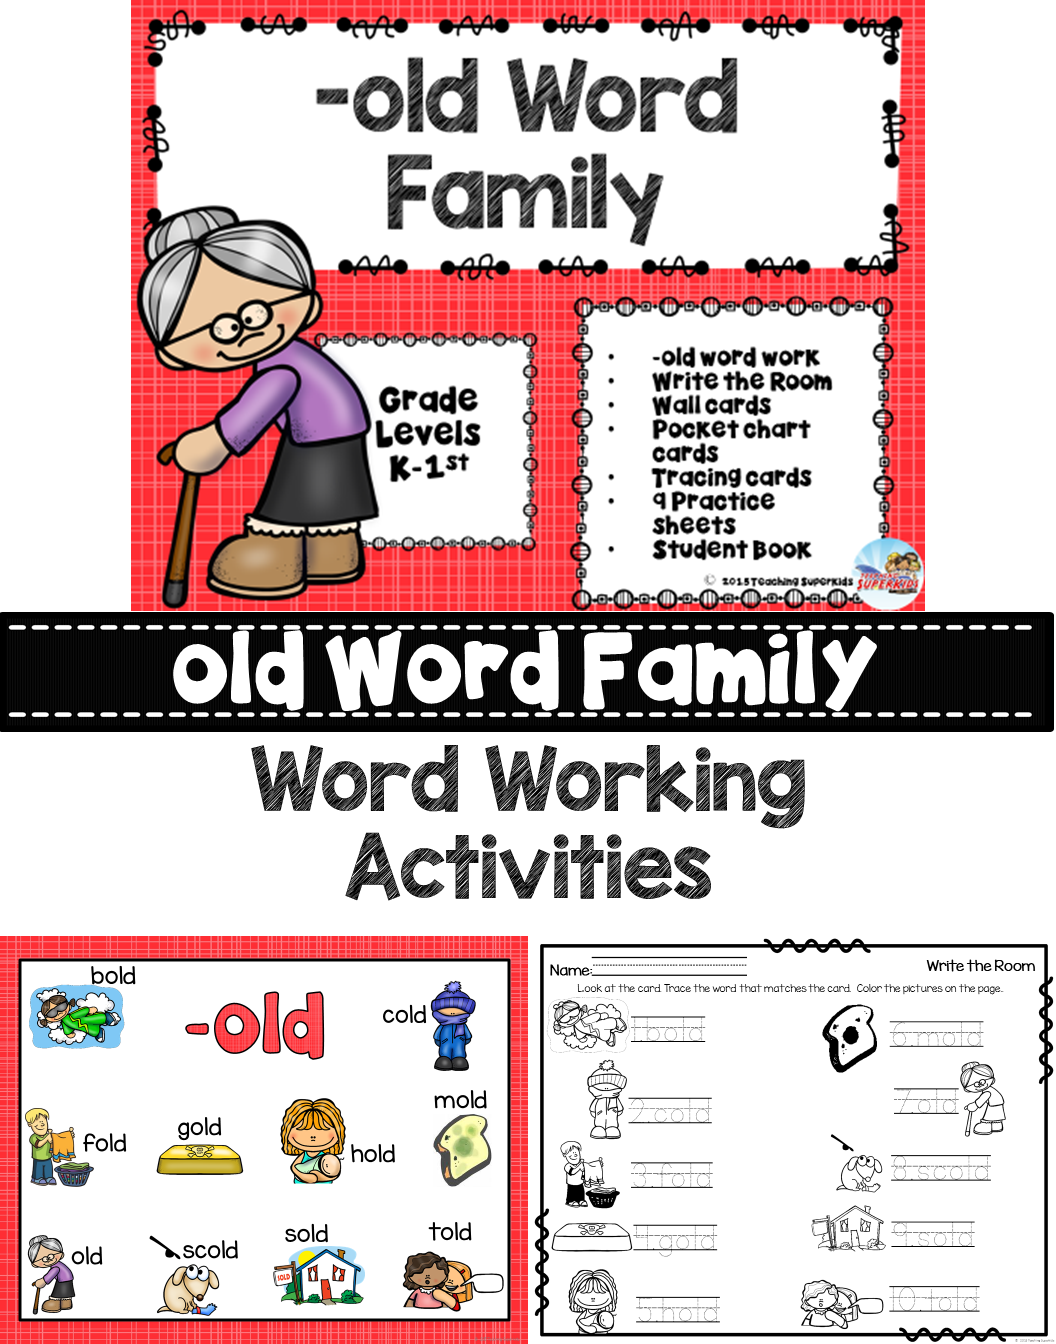 old Word Family | Teacher created resources, Activities and Language